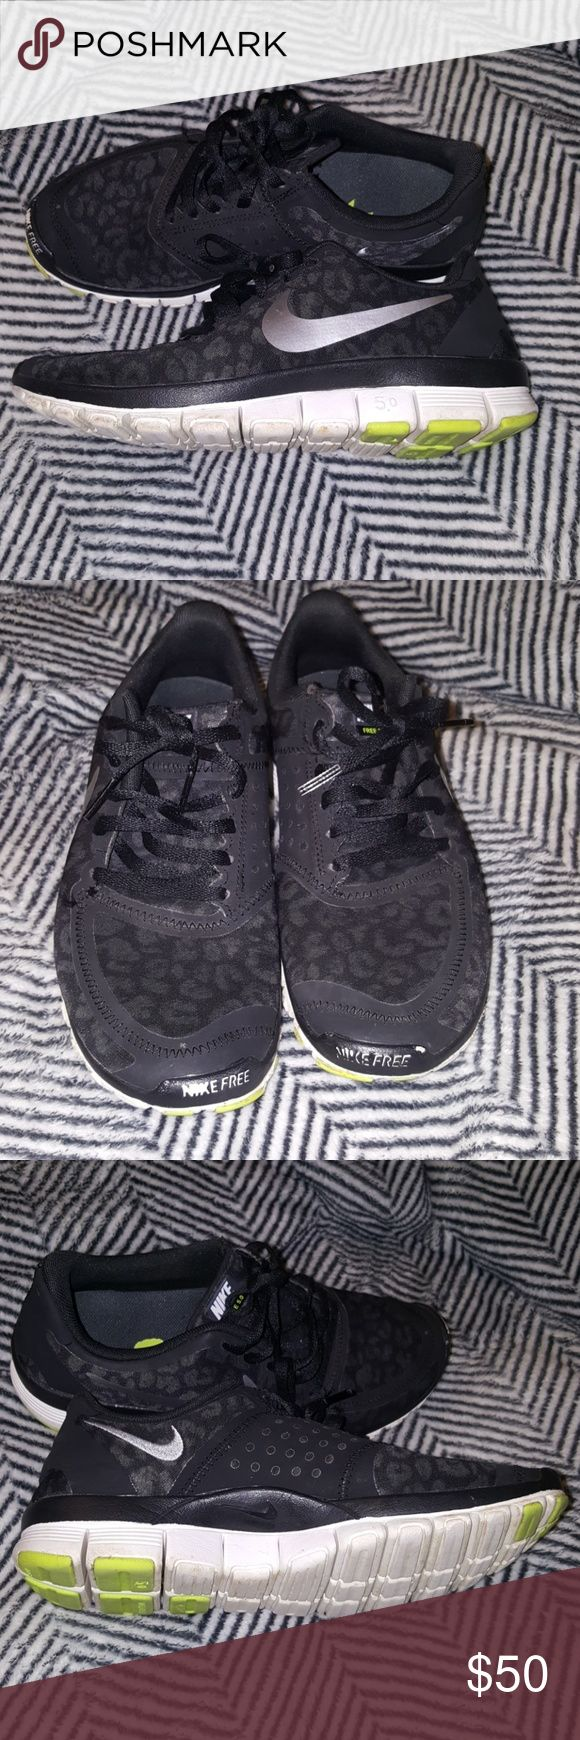 Nike free 5.0 Black and white nikes with cheetah print super cute and pretty good condition, they have scuffs in front of shoes and inside heel of shoe nike sign peeled but other than that lots of life left Nike Shoes Athletic Shoes